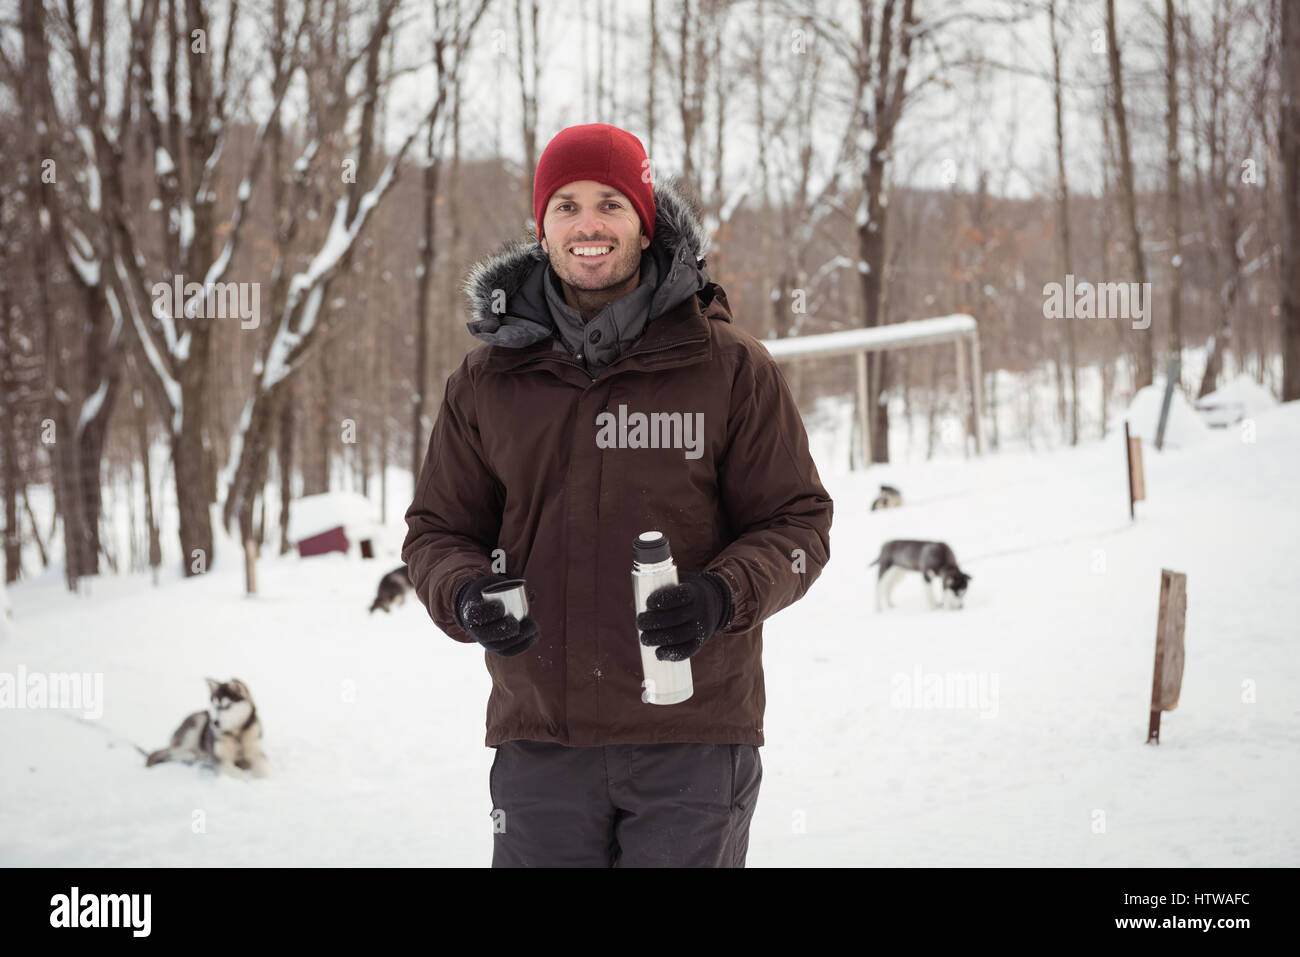 Musher holding thermos - Stock Image